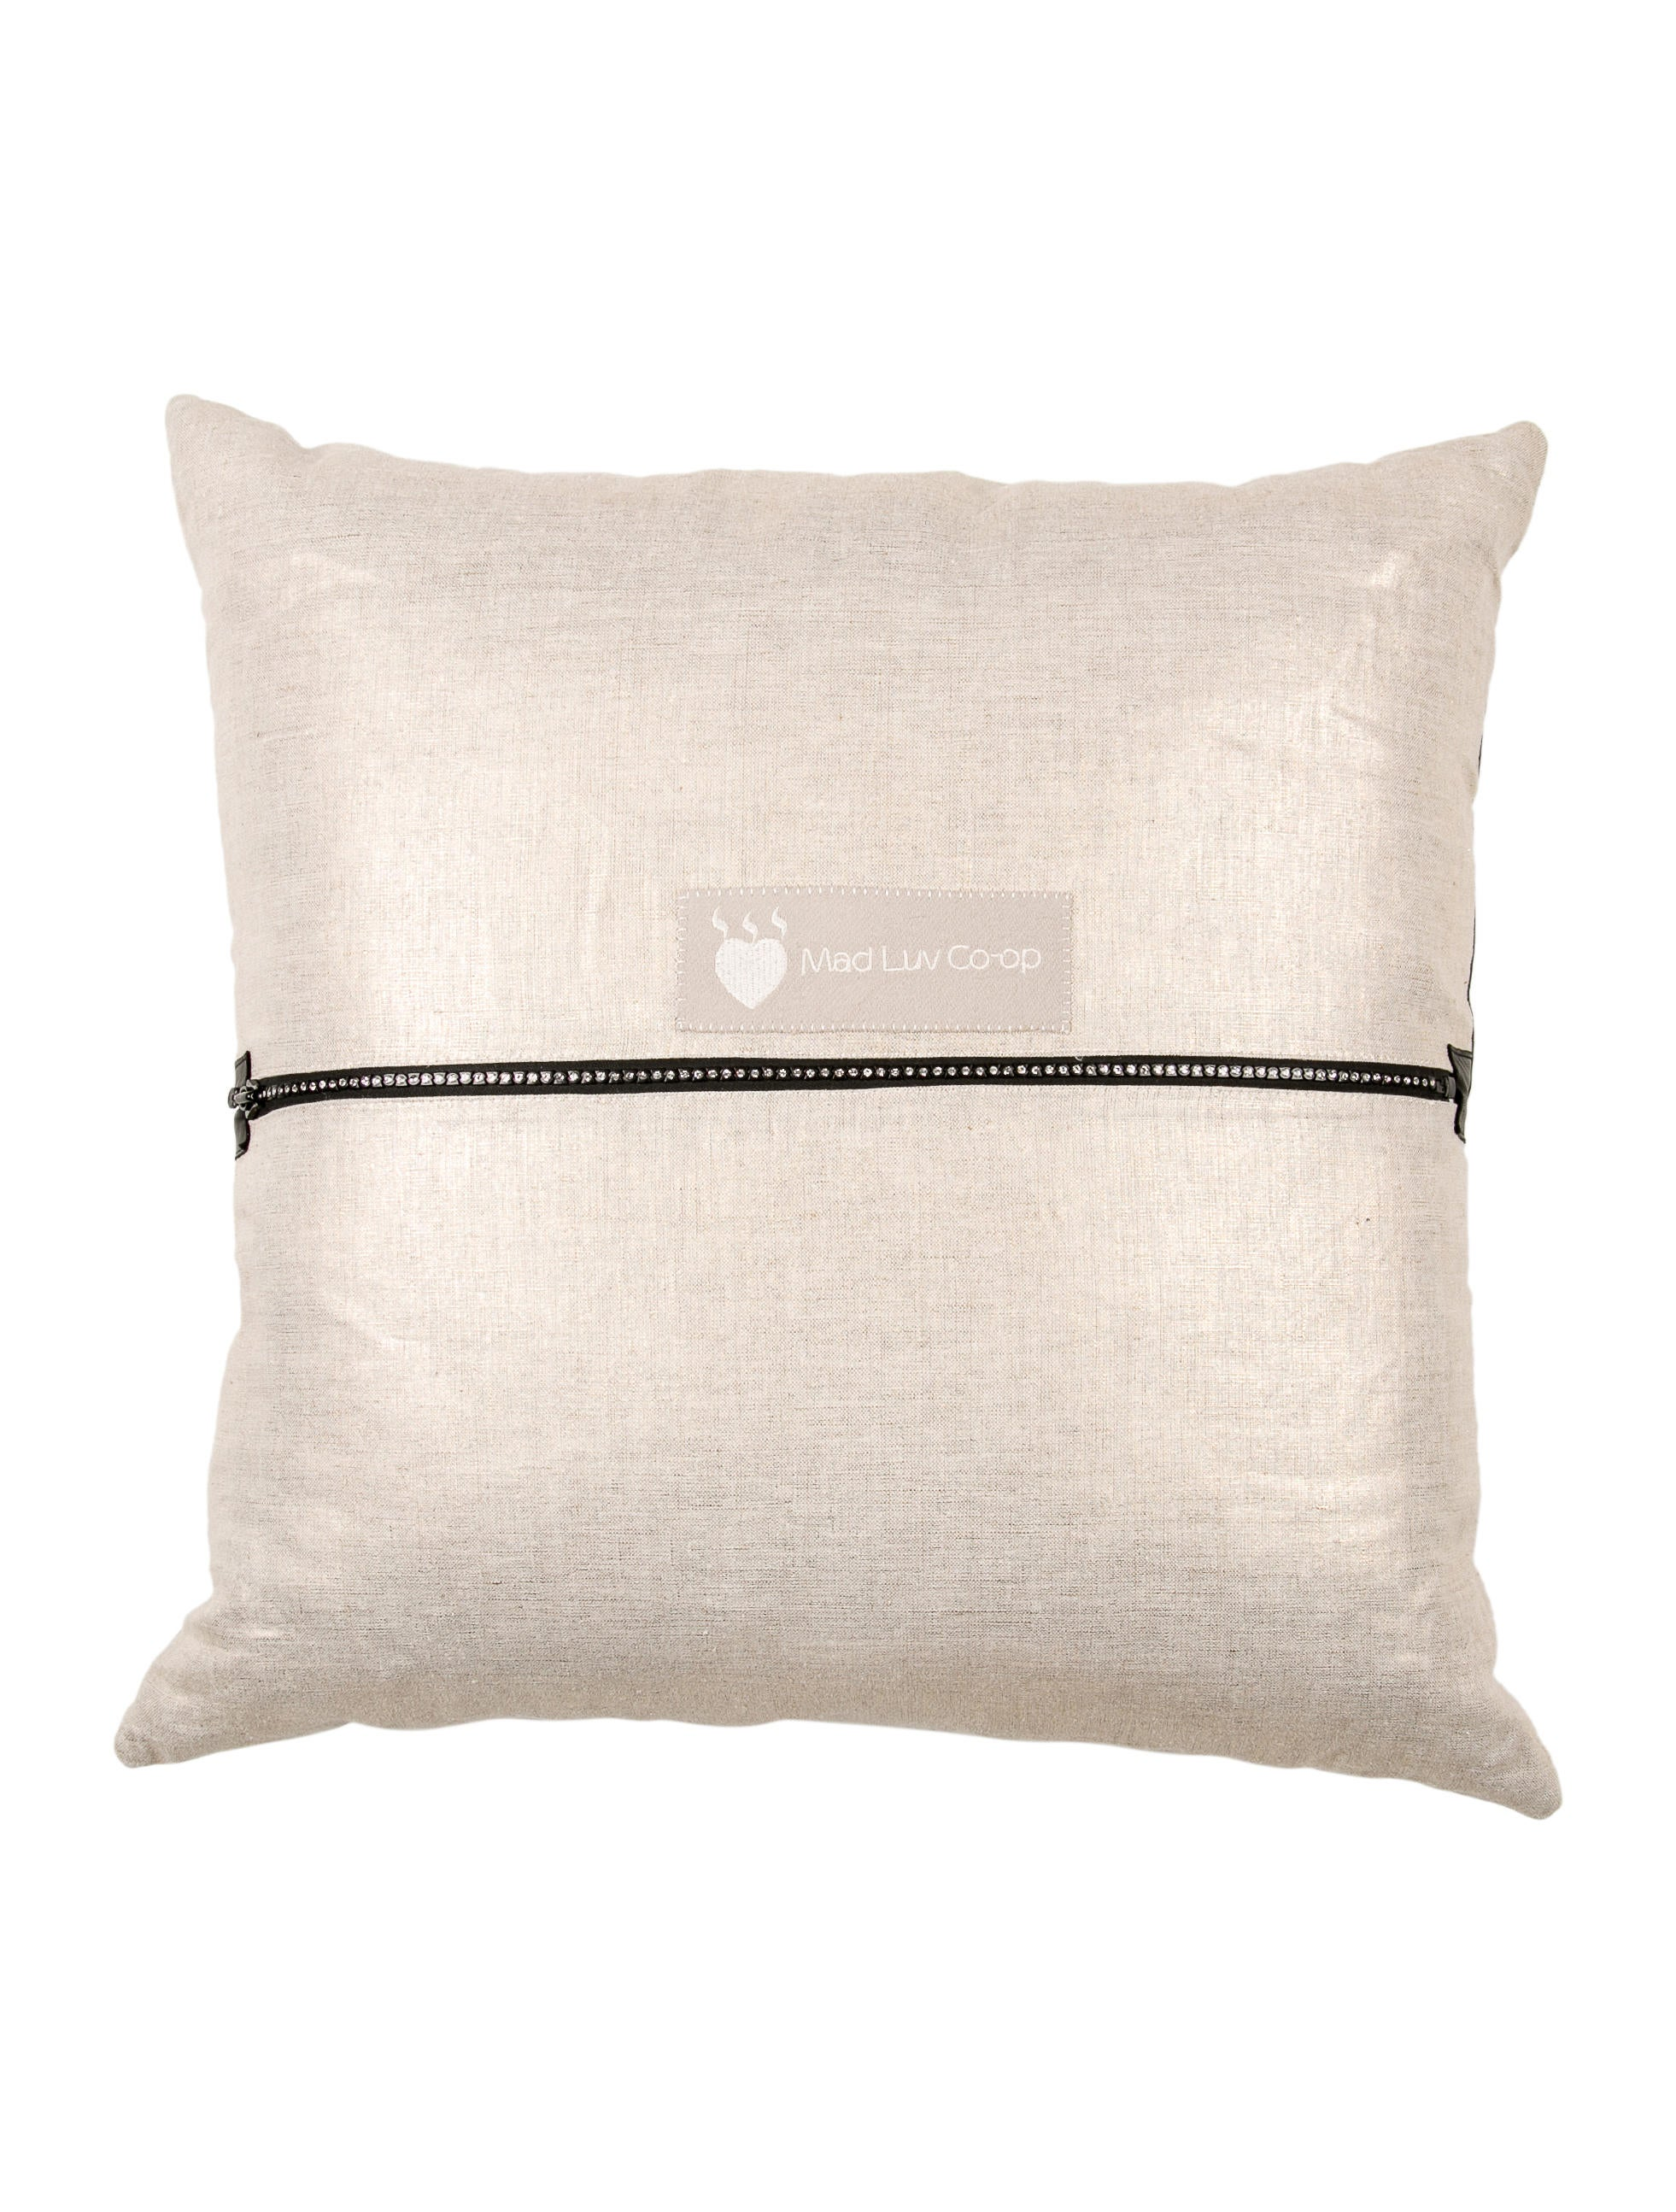 Leather-Accented Throw Pillow - Bedding And Bath - PILLO20084 The RealReal